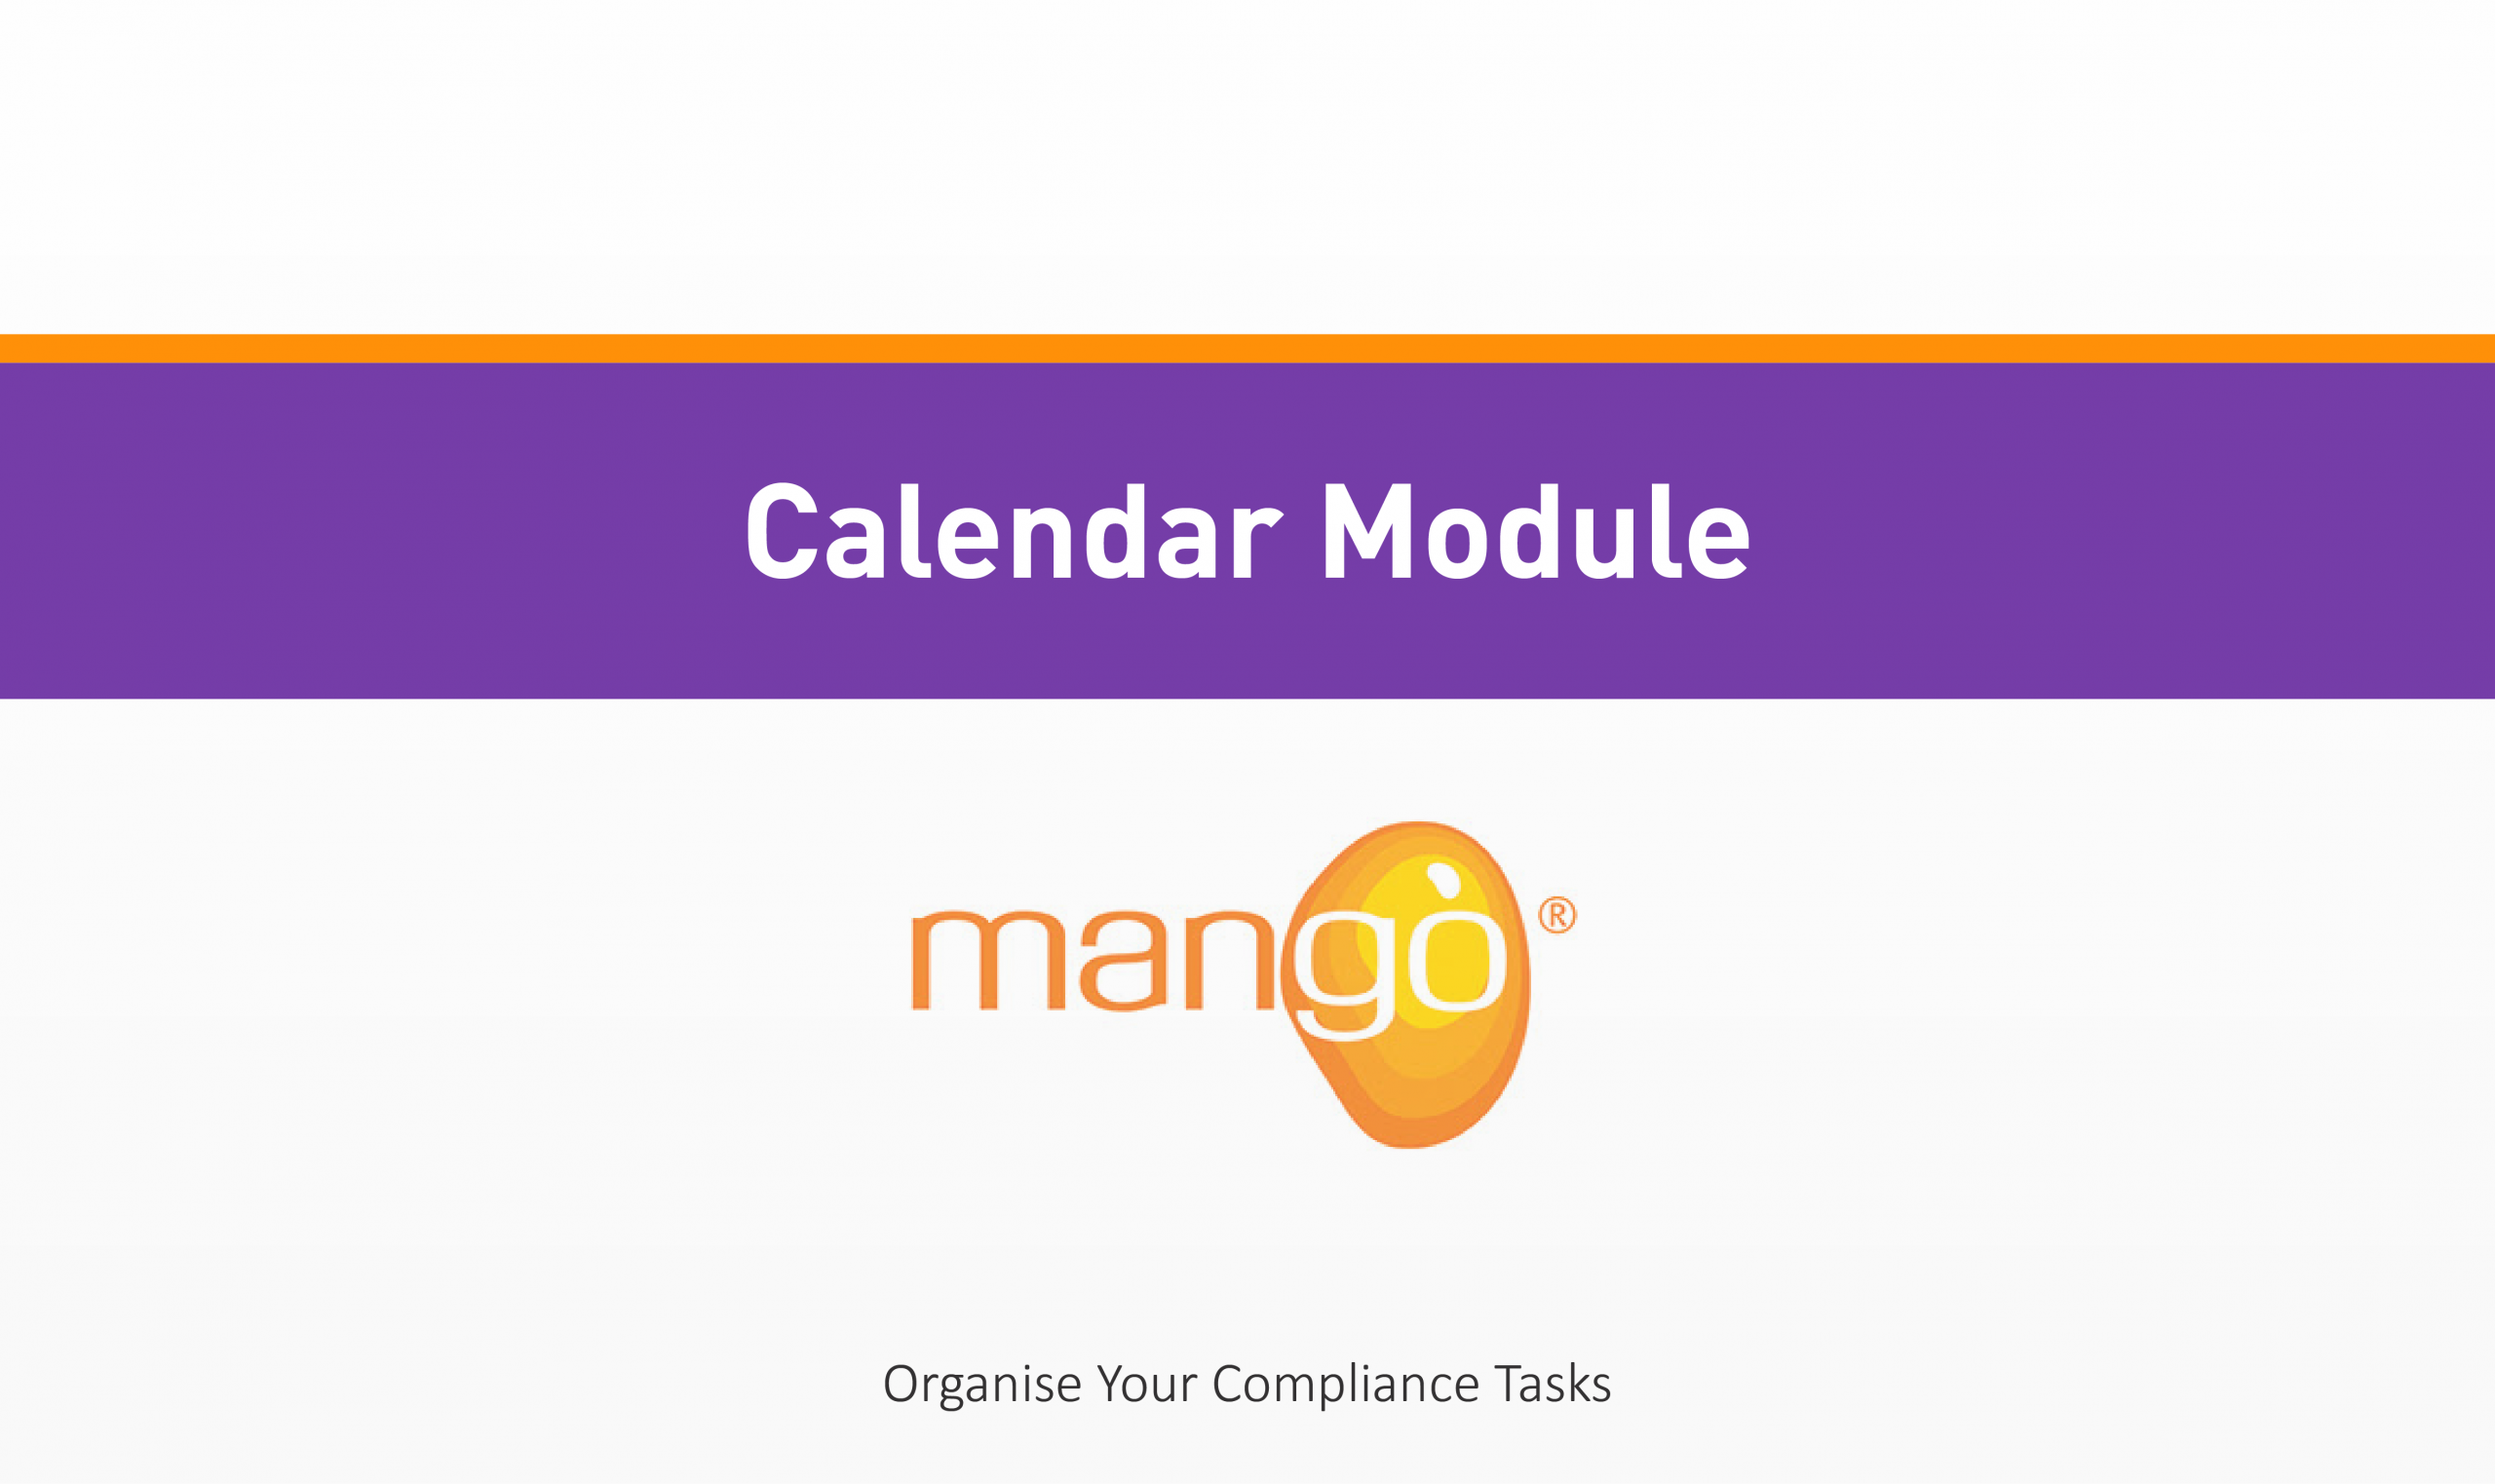 Calendar Quality Health Safety Environment Management Compliance Services Australia QHSE Consulting And Auditing Mango Compliance Software Solutions